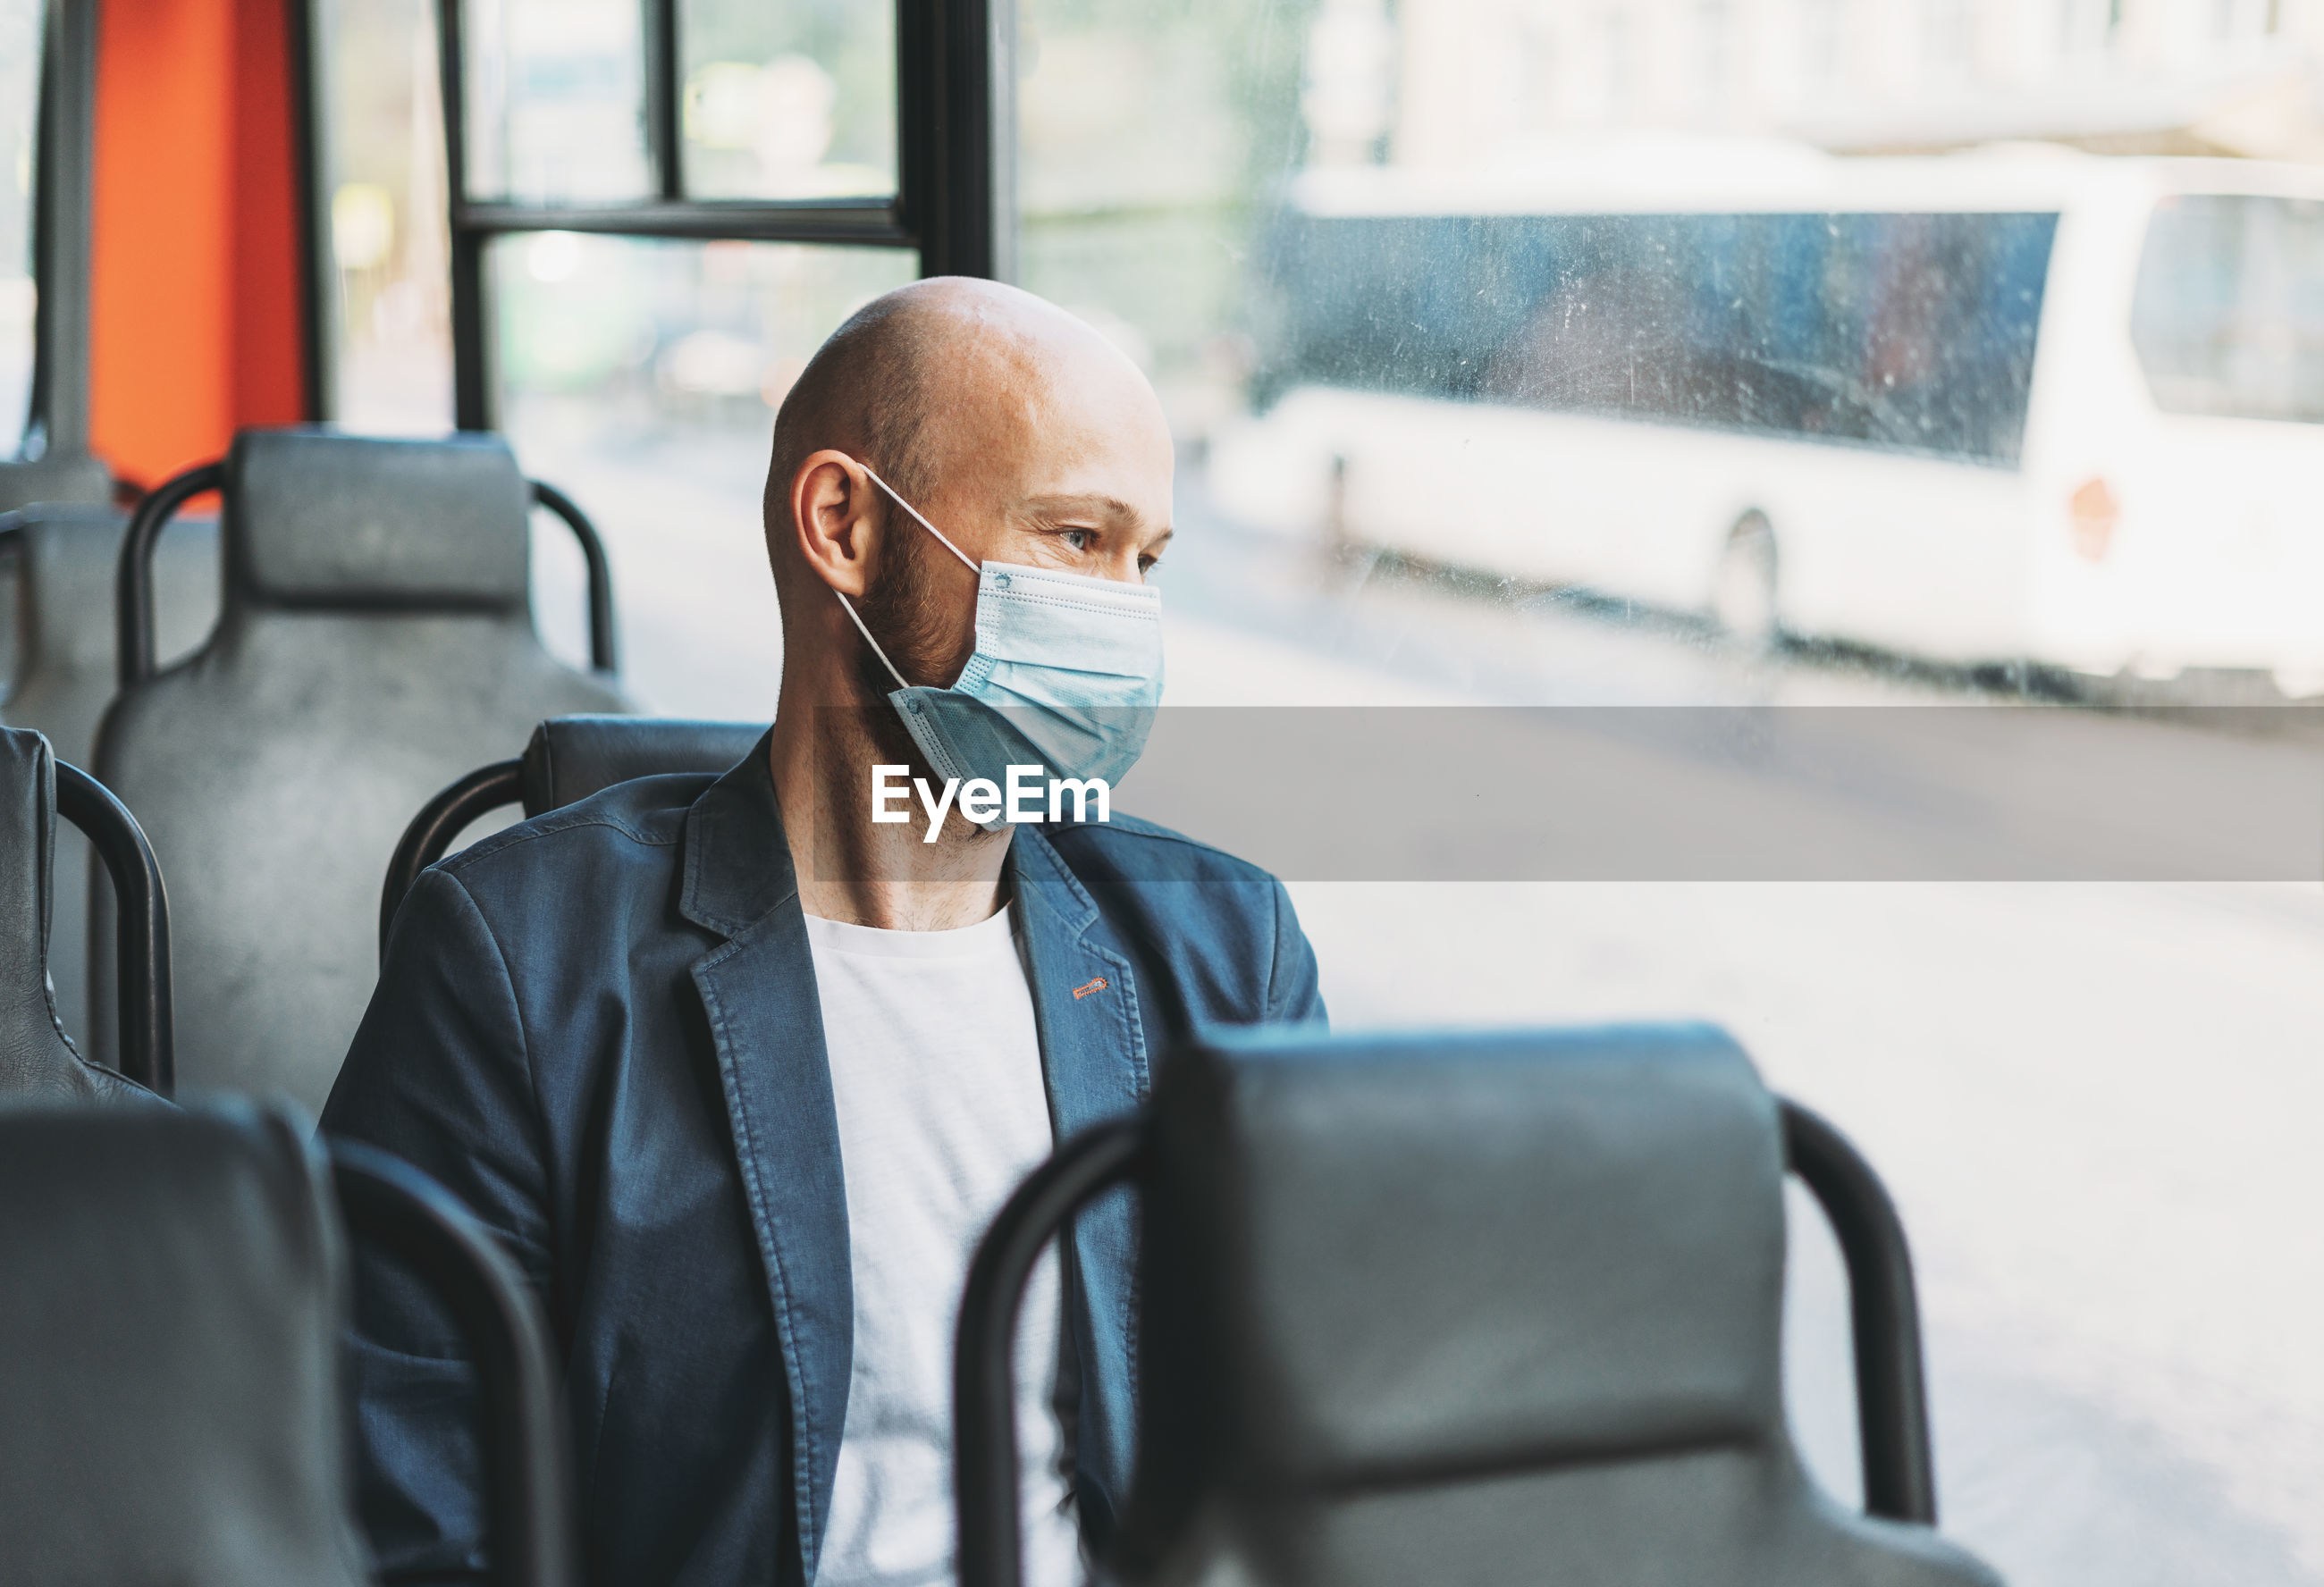 PORTRAIT OF MAN SITTING ON SEAT IN BUS